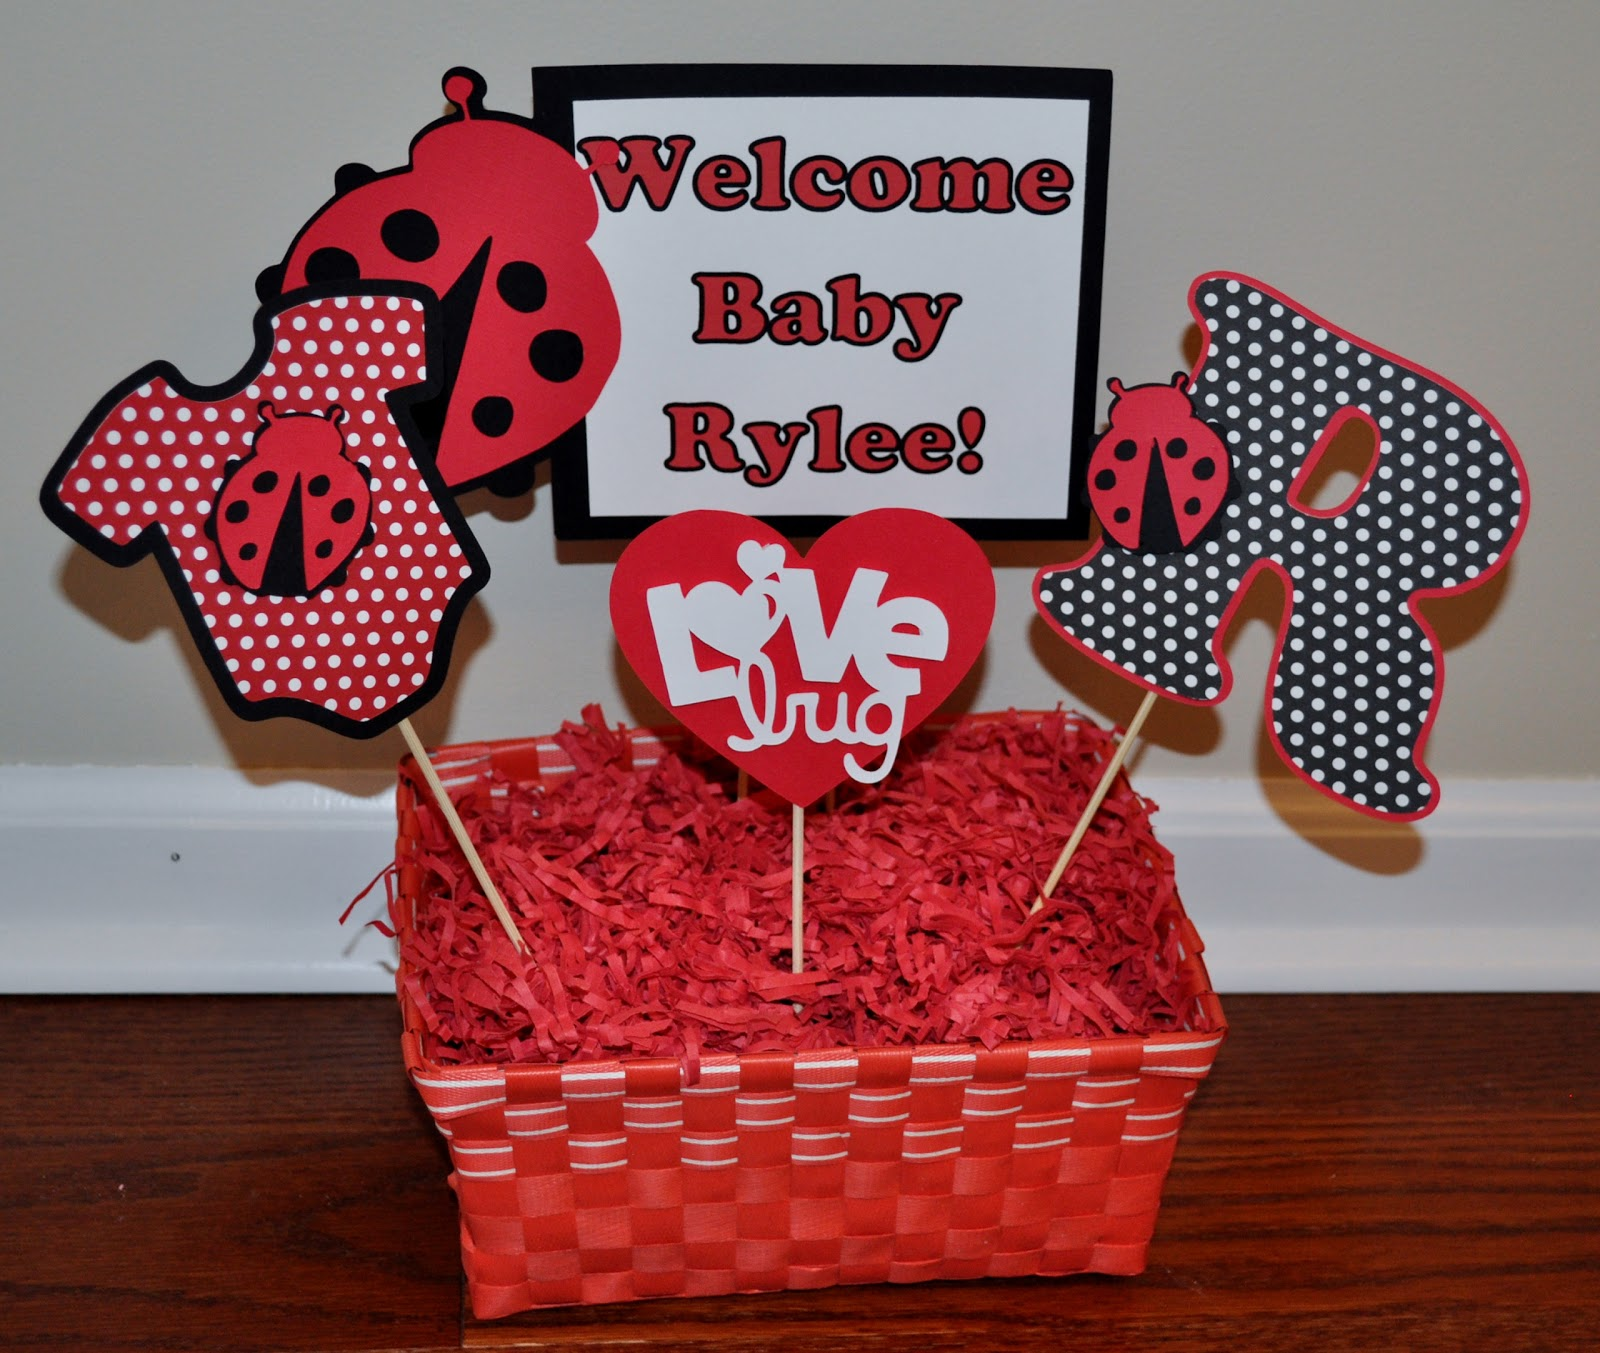 Baby Shower Centerpieces Homemade: R + R Creations: Ladybug Baby Shower Centerpiece